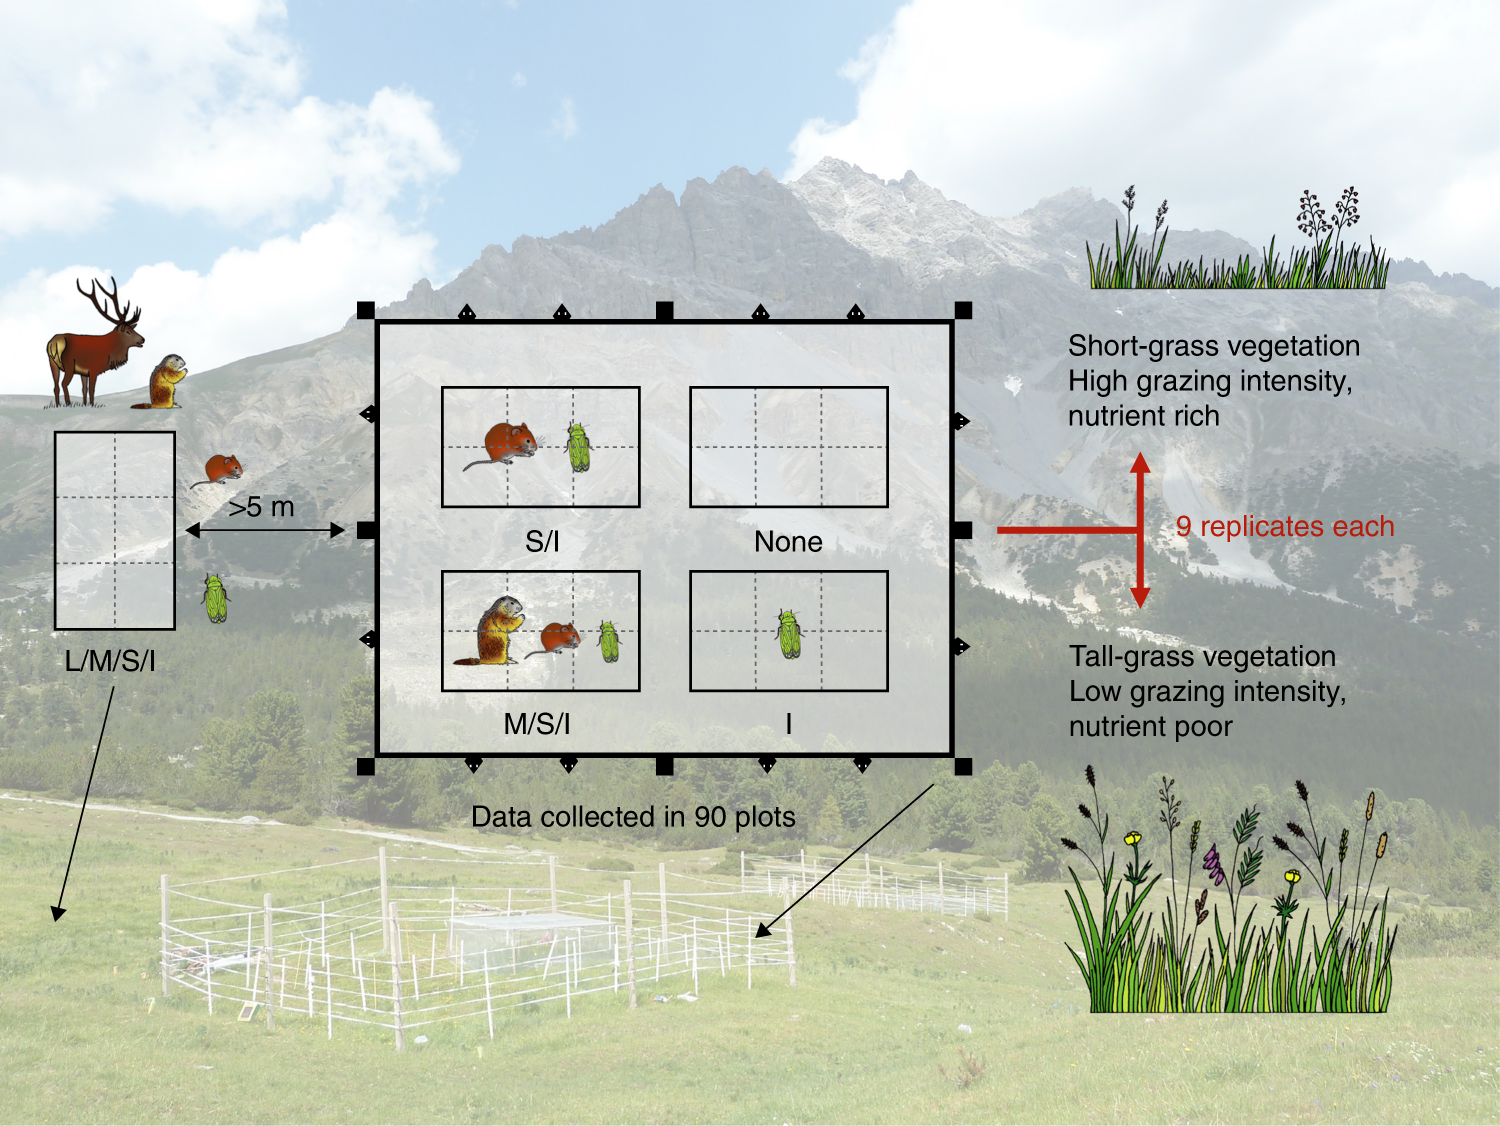 Size Dependent Loss Of Aboveground Animals Differentially Affects Fourwire Electric Fence System Best Control Deer Access To Food Grassland Ecosystem Coupling And Functions Nature Communications